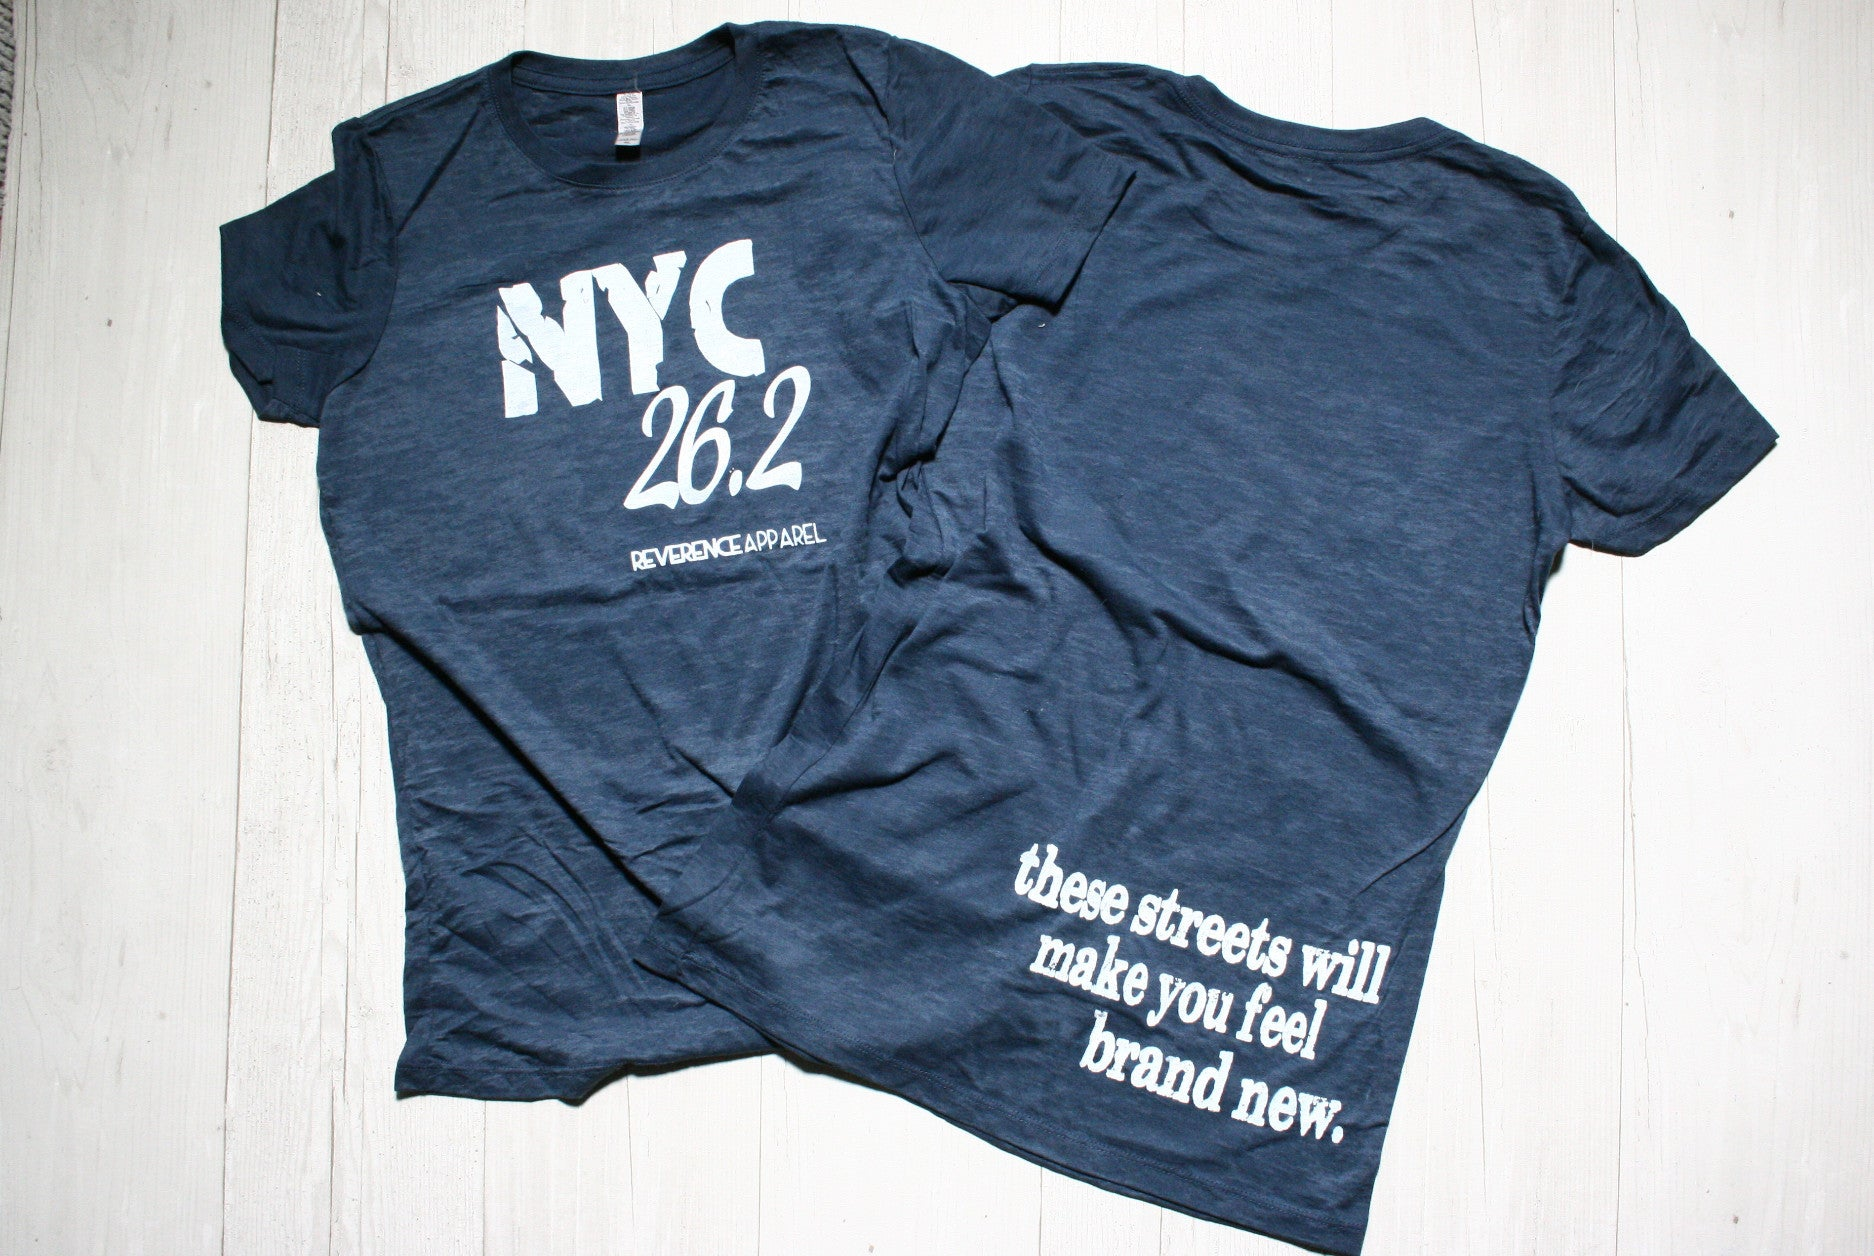 NYC 26.2 THESE STREETS WILL MAKE YOU FEEL BRAND NEW REVERENCE APPAREL